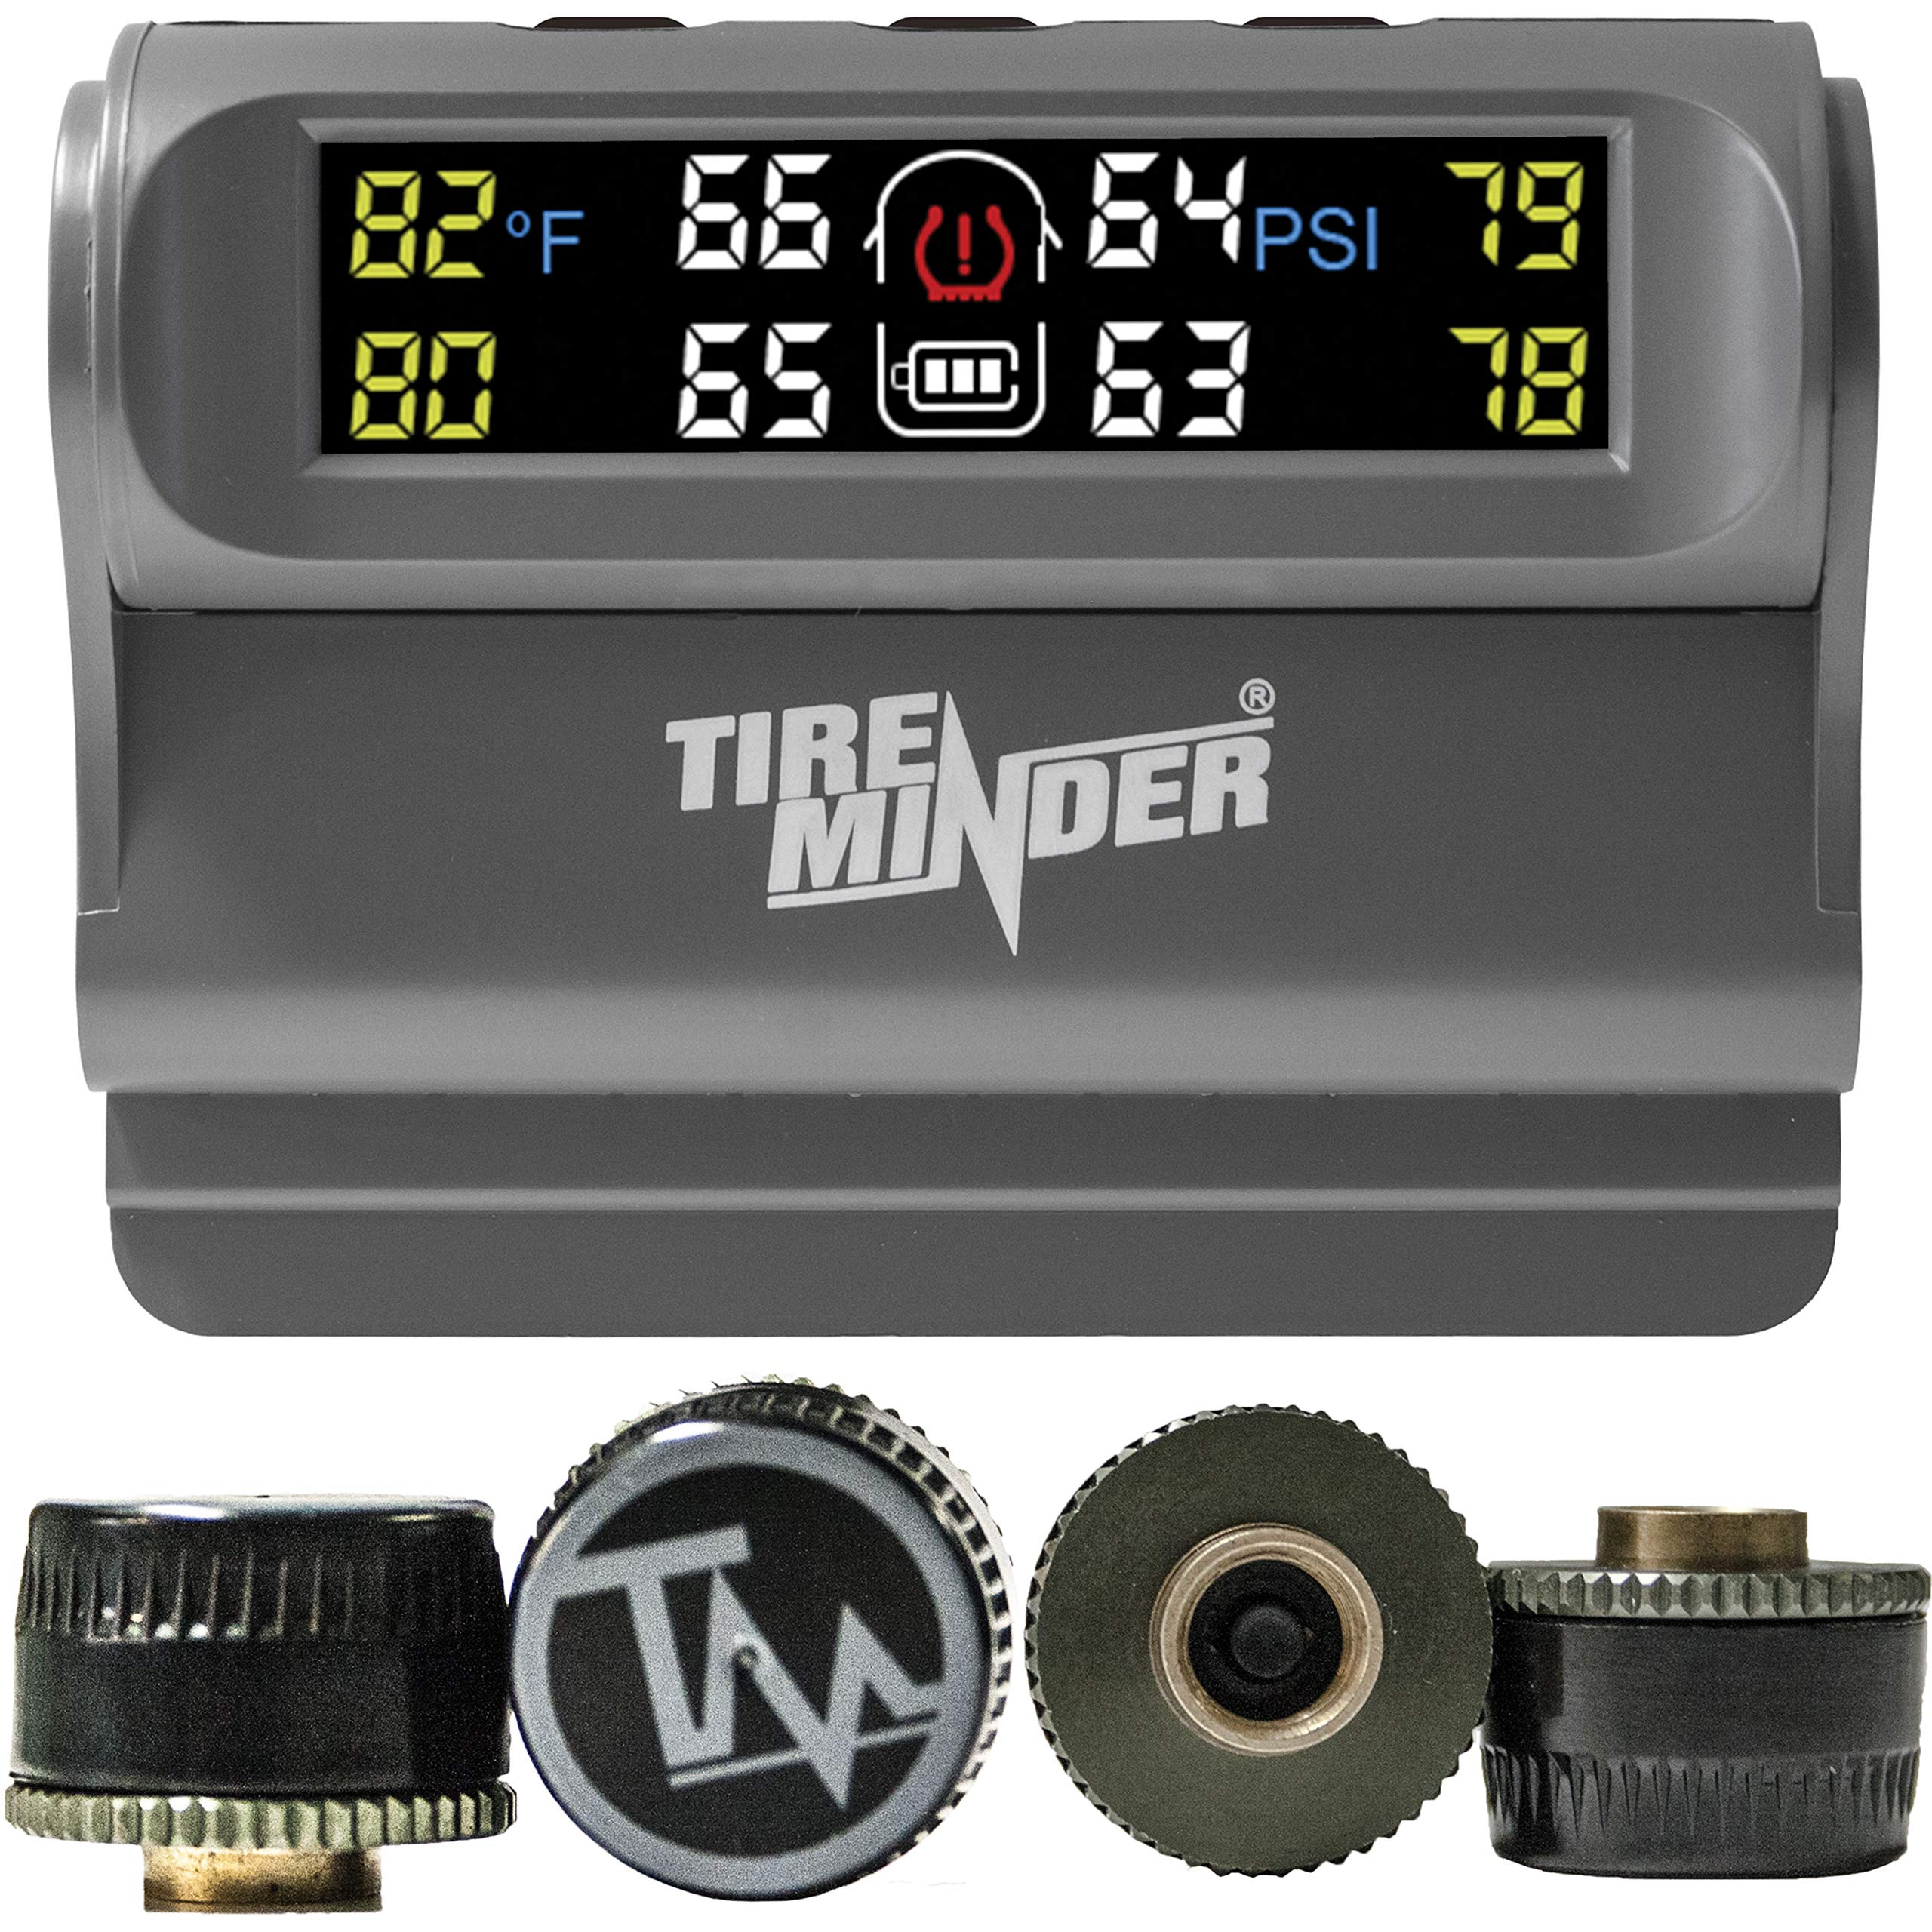 TireMinder Solar Powered Trailer TPMS, 4 Tire Kit by Minder Research